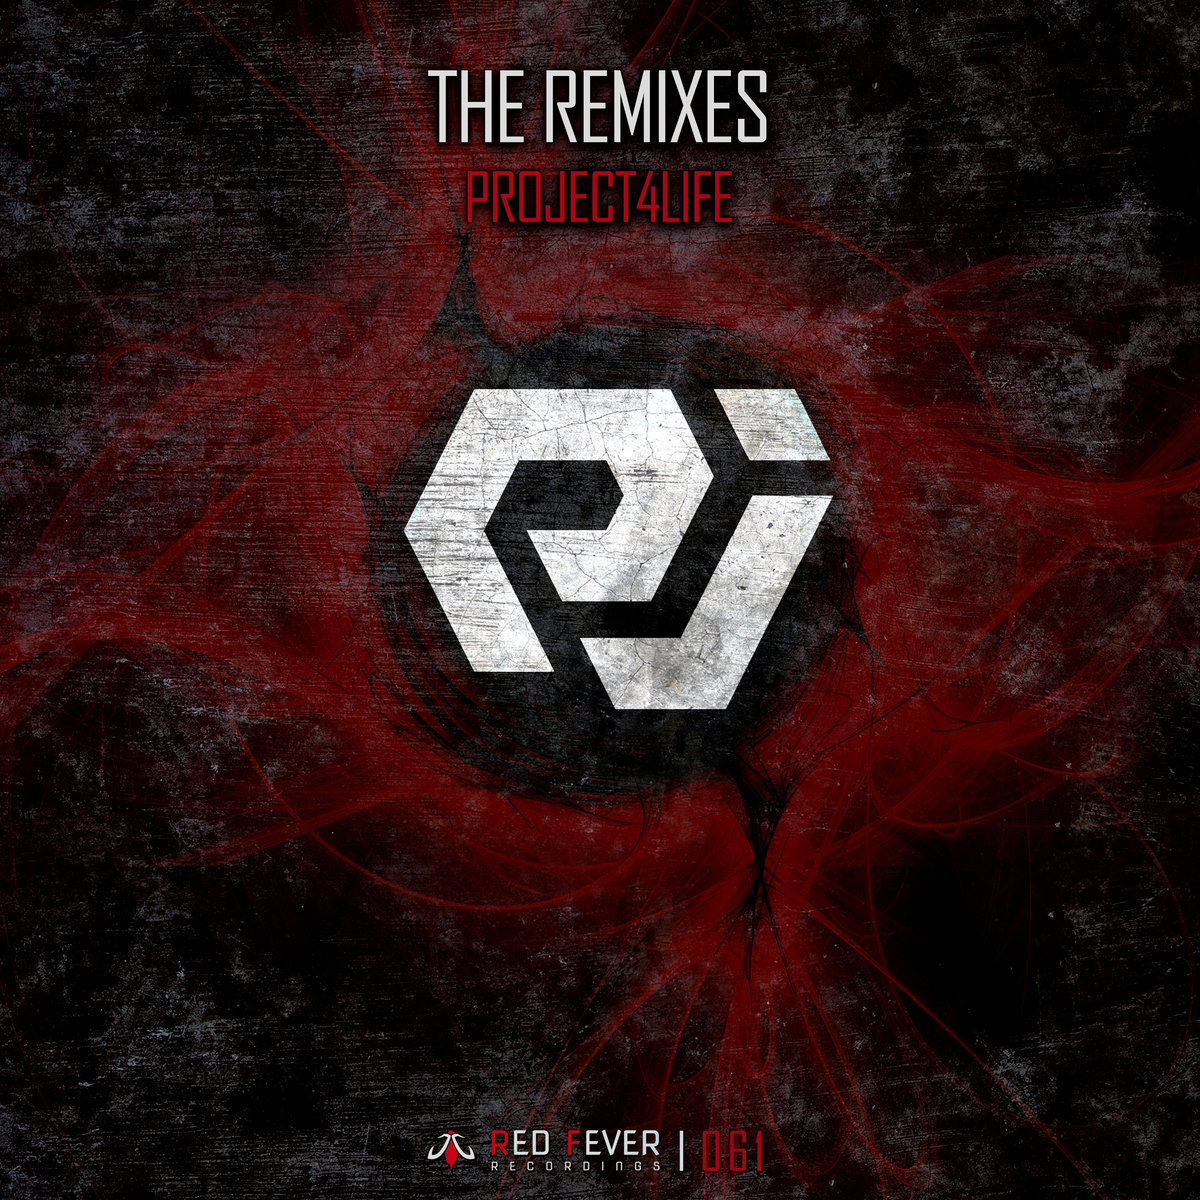 Project4life - Keep It Real (Demolior Remix) @ 'The Remixes' album (electronic, gabber)